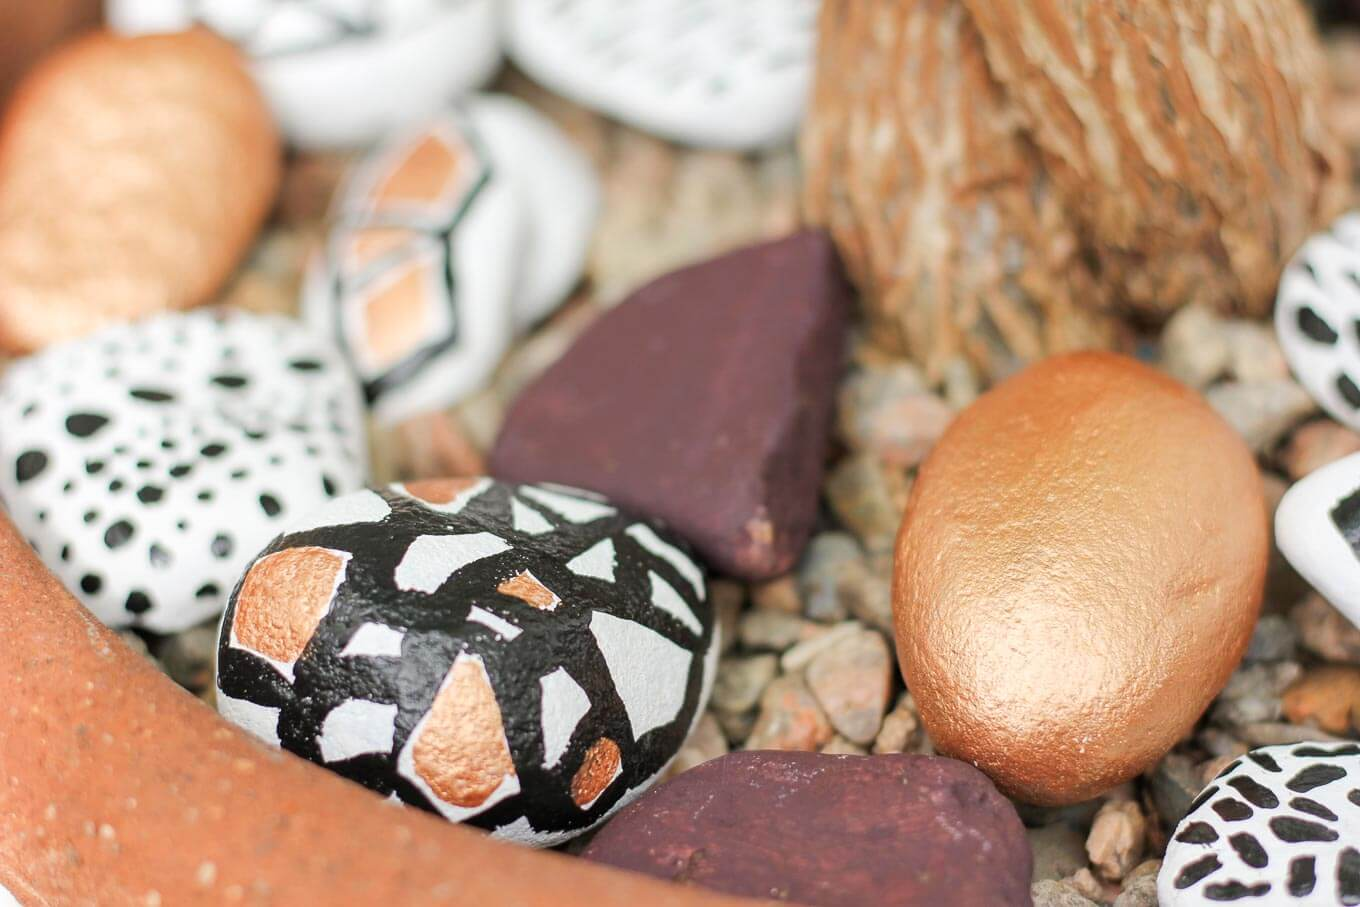 These DIY painted rocks are a simple and budget-friendly craft that add pizazz to potted plants and gardens. Find some stones, grab your paint and dream up some designs! | MakeAndDoCrew.com